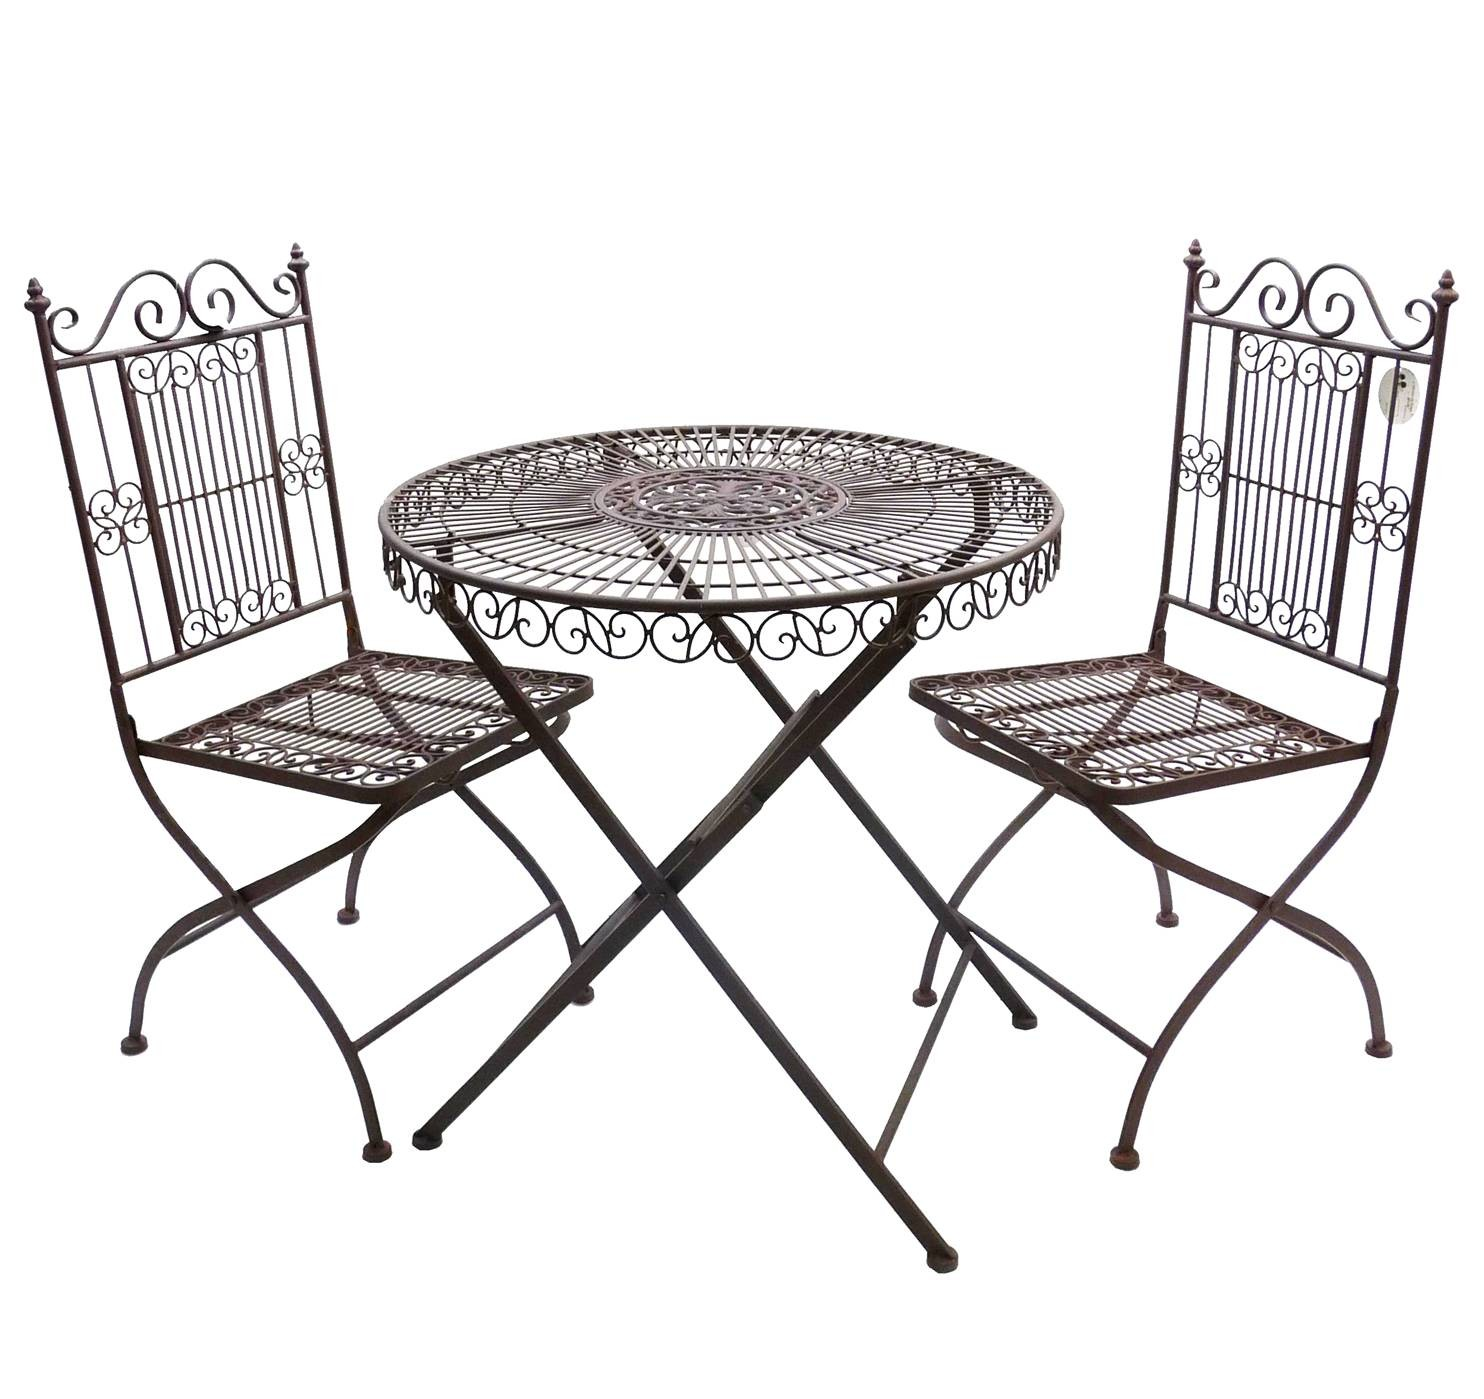 Table De Jardin Fer Ancienne Salon De Jardin 2 Personnes Salon De The Bistrot 1 Table 2 Chaises En Fer Marron